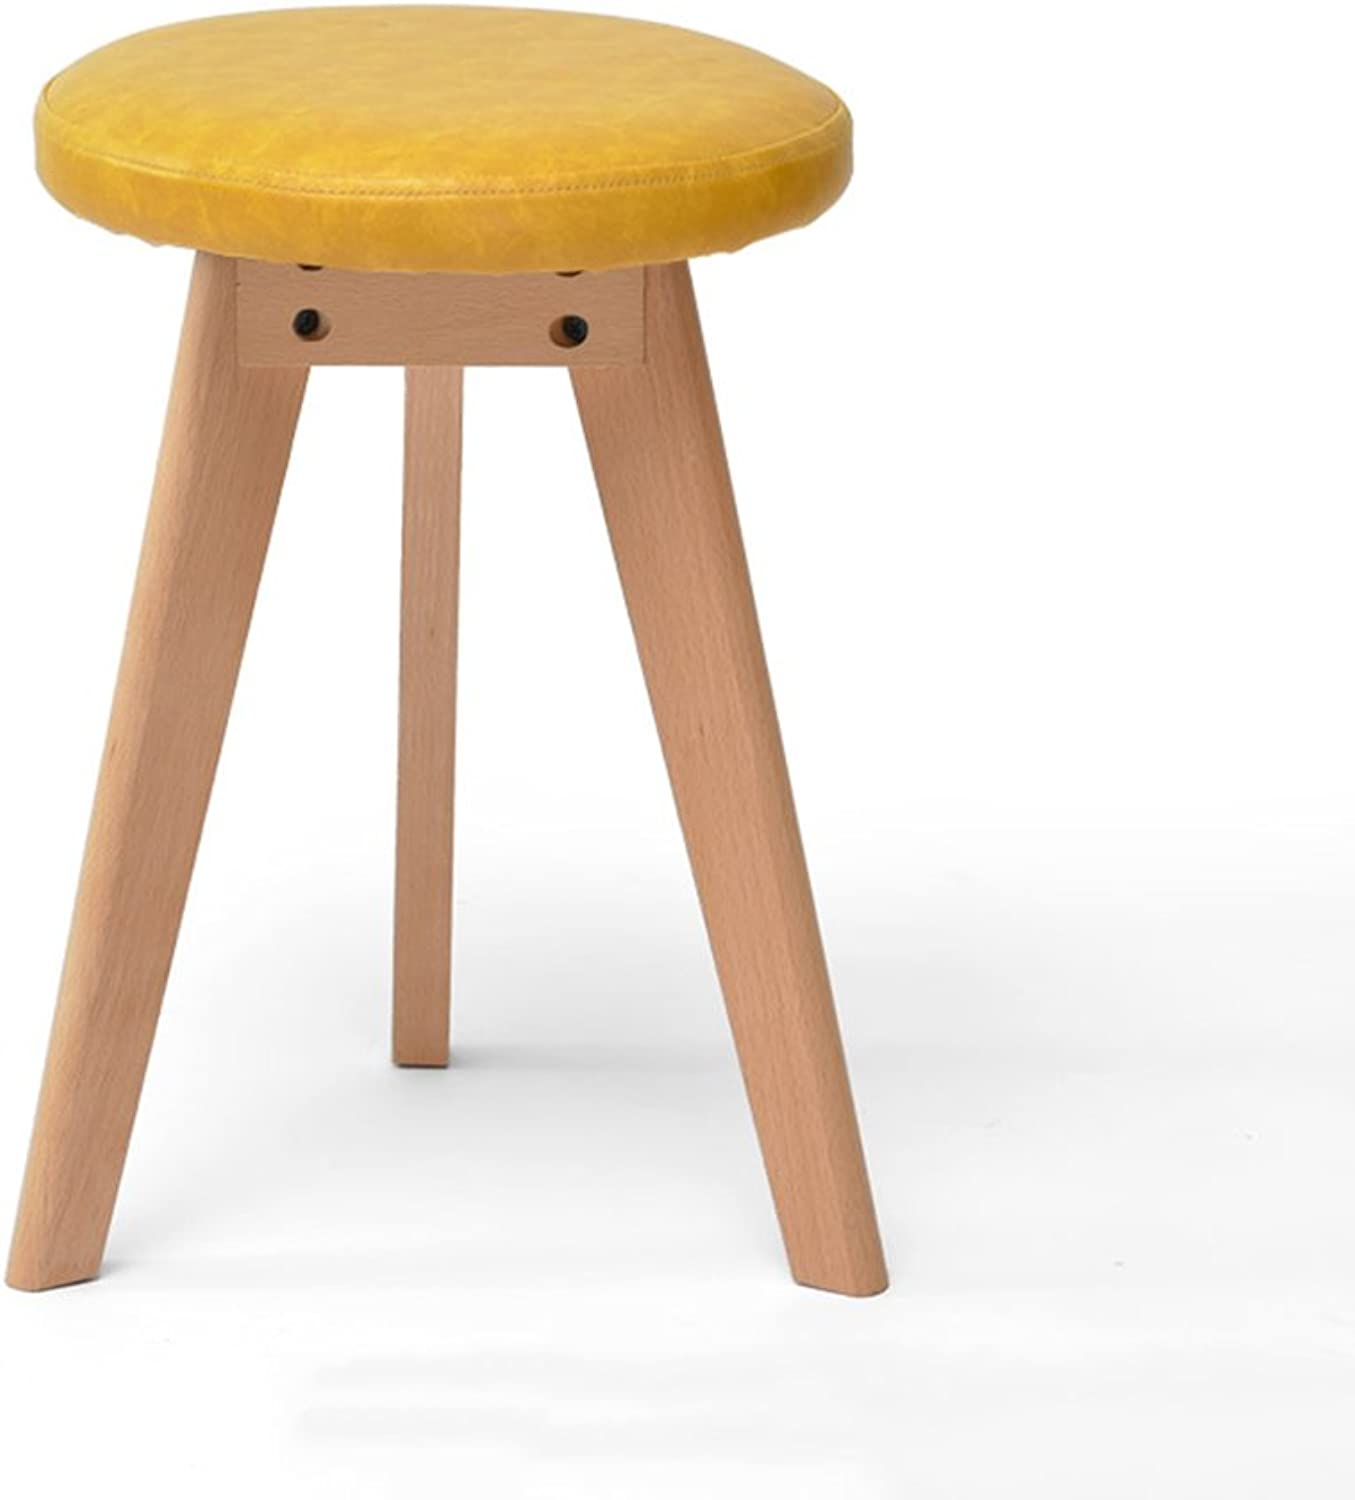 ZHIRONG Solid Wood Stool Creative Triangle Make-up Stool Round Dining Table Stool 31  31  46CM (color   Yellow)